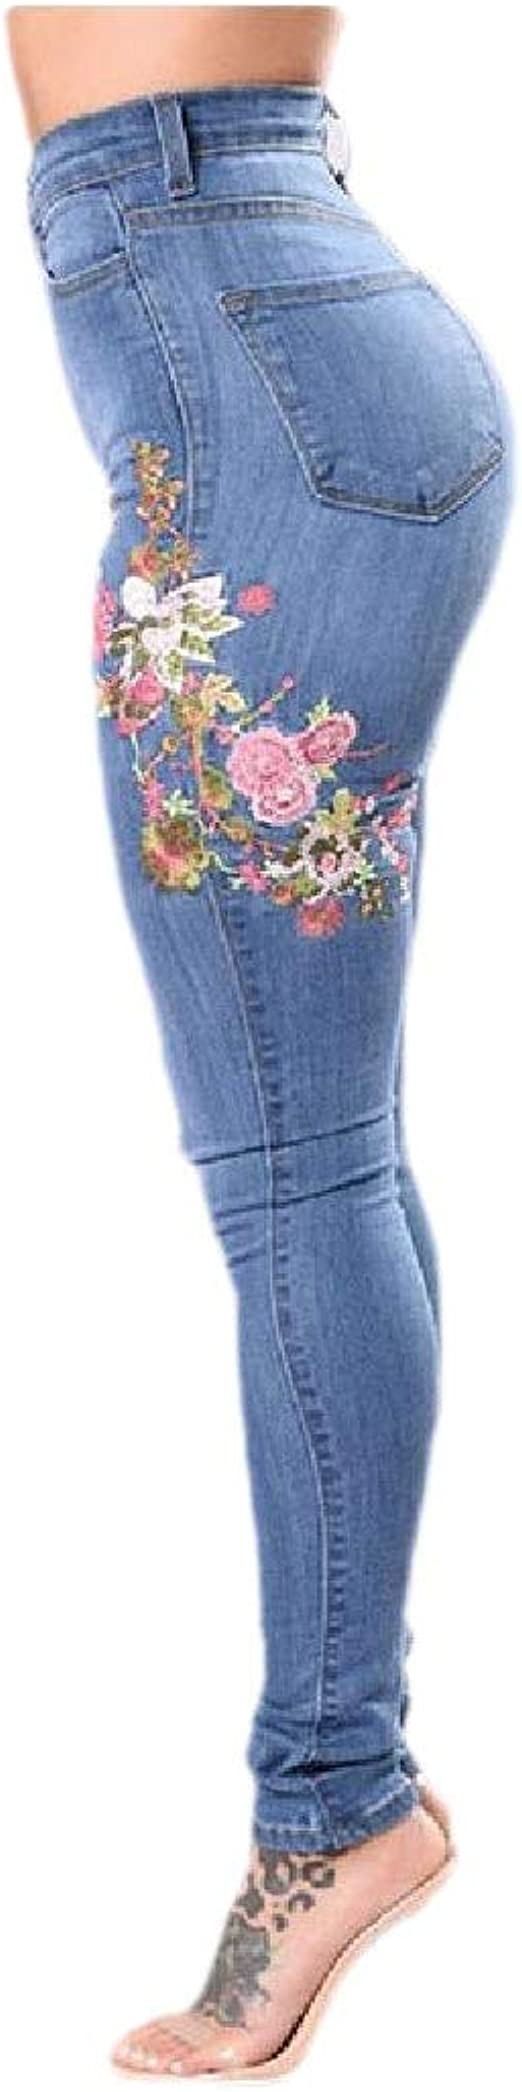 VITryst Women Fitness Washed Ripped Hole Stretch Over Waist Embroidered Jeans